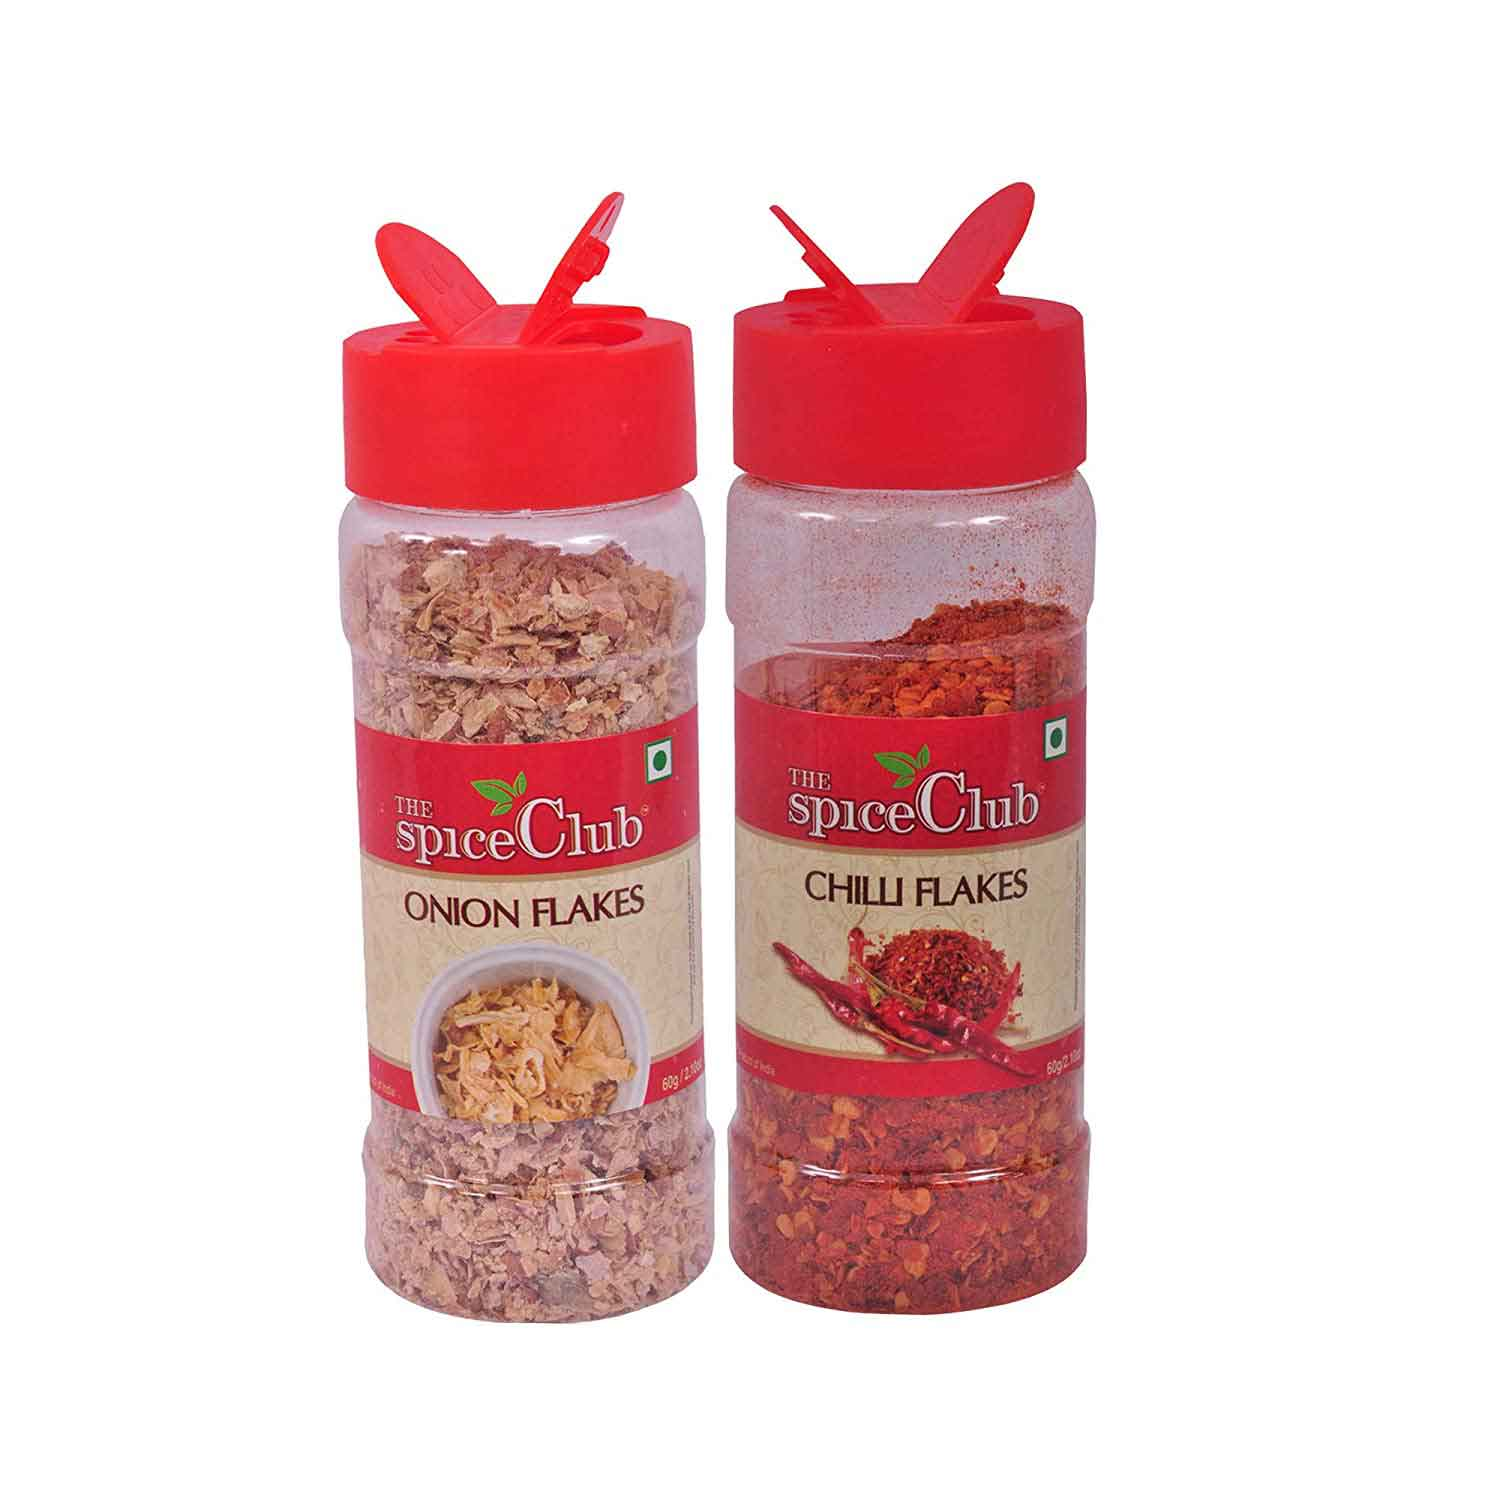 Red Onion Flakes 40g + Chilli Flakes 60g - for Pizza, Noodles, Veg and Non Veg Seasoning